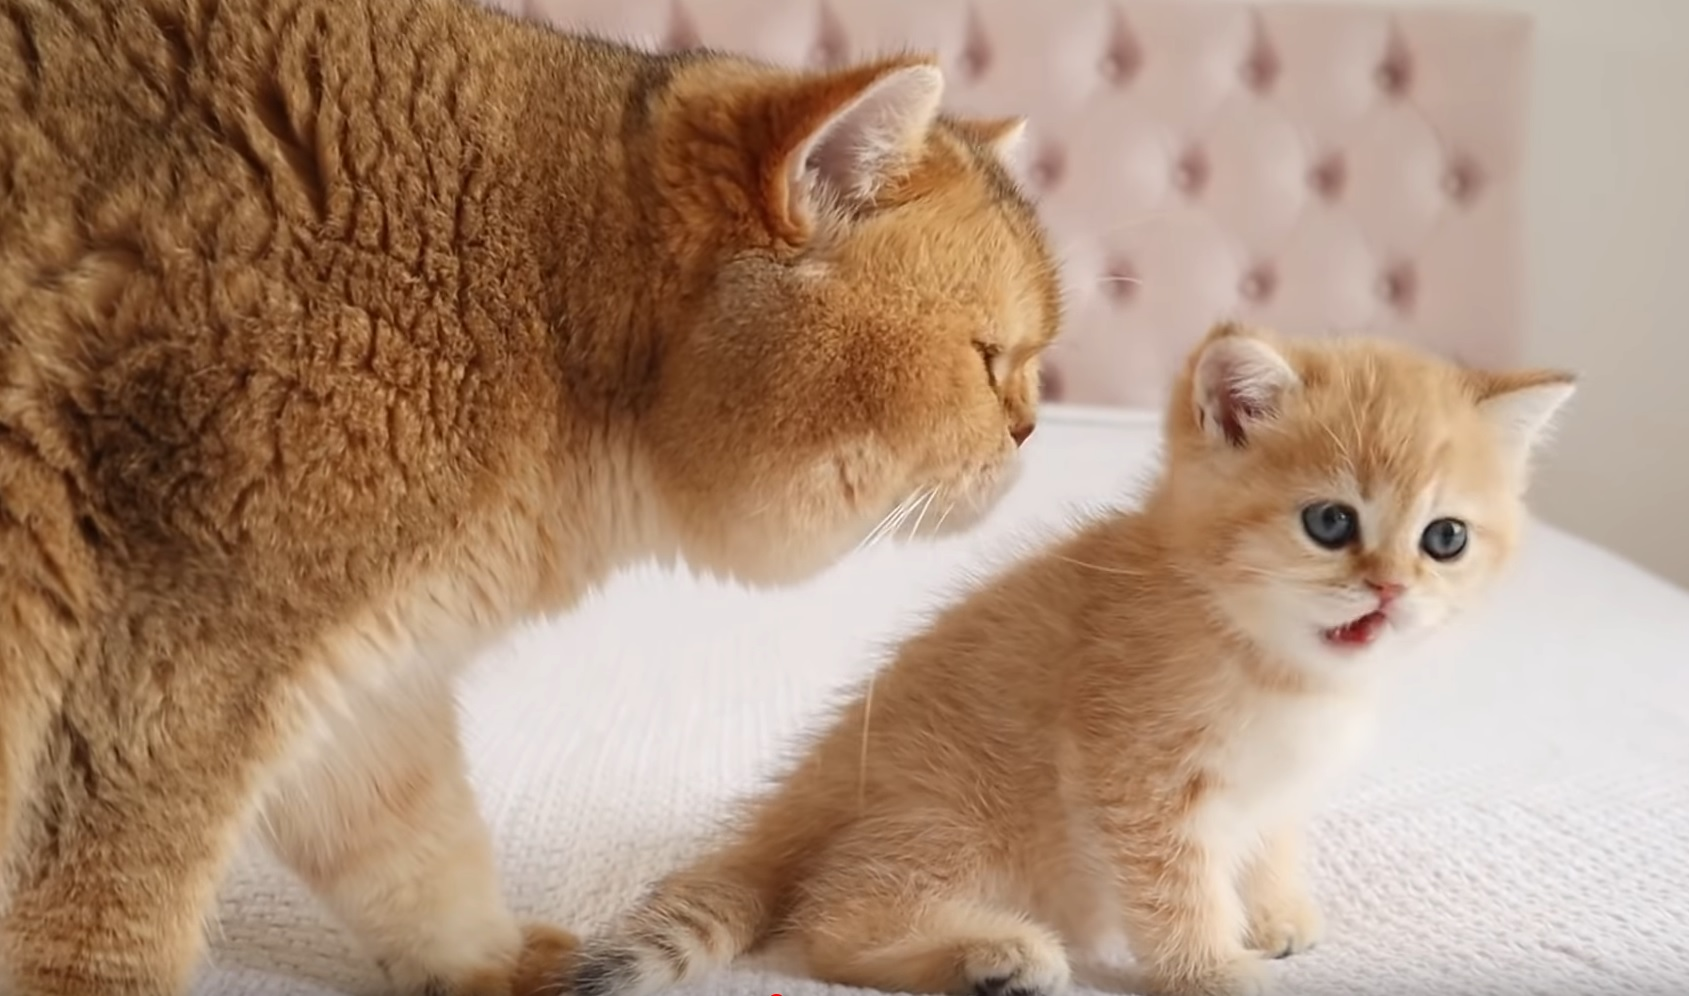 Dad Checks Out His Kitten